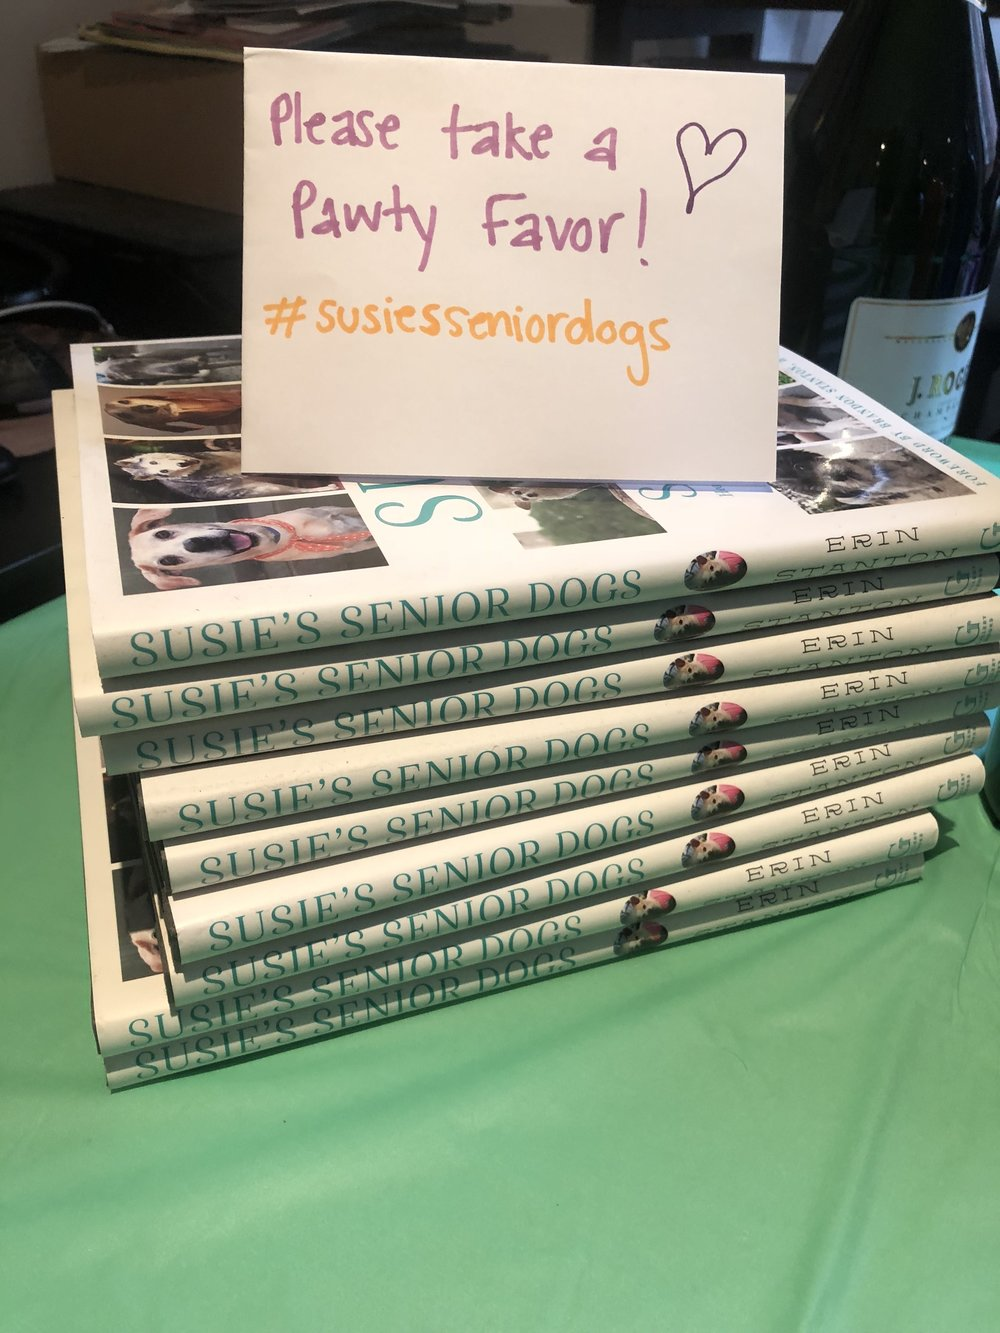 We gave out Susie's Senior Dog books as pawty favors! #susiesseniordogs